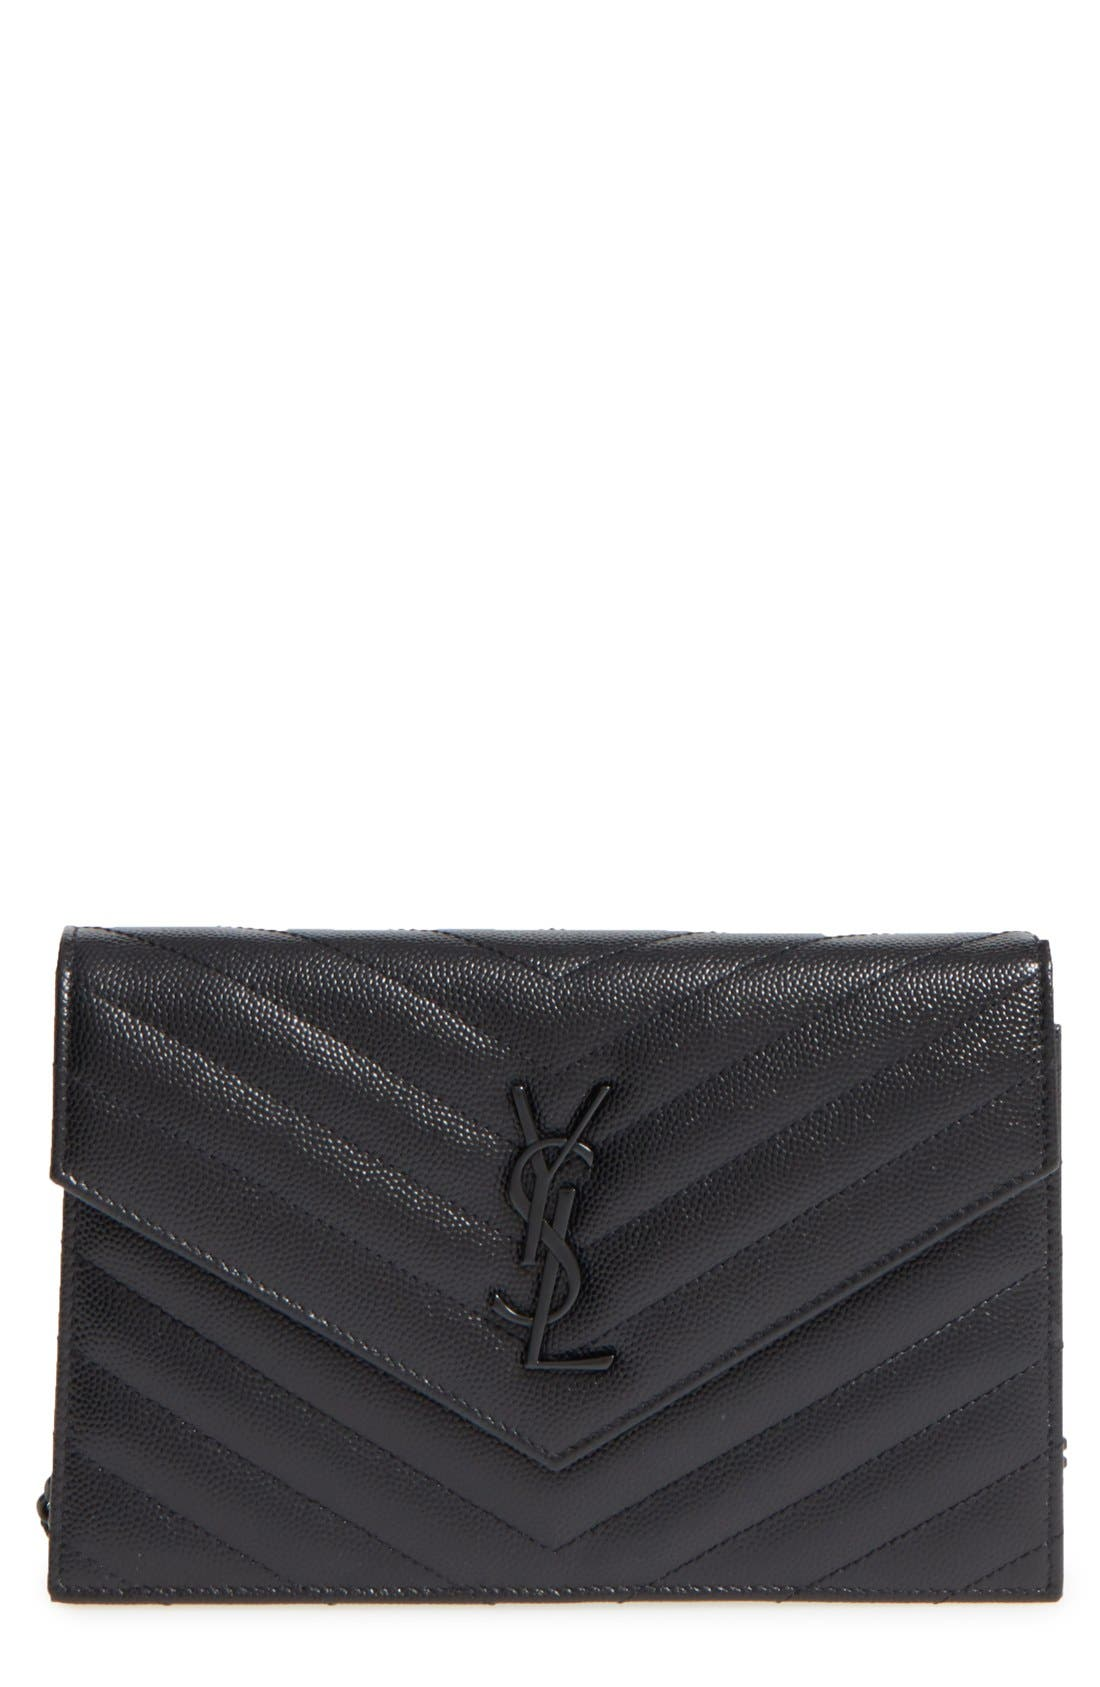 SAINT LAURENT, Quilted Leather Wallet on a Chain, Main thumbnail 1, color, NERO